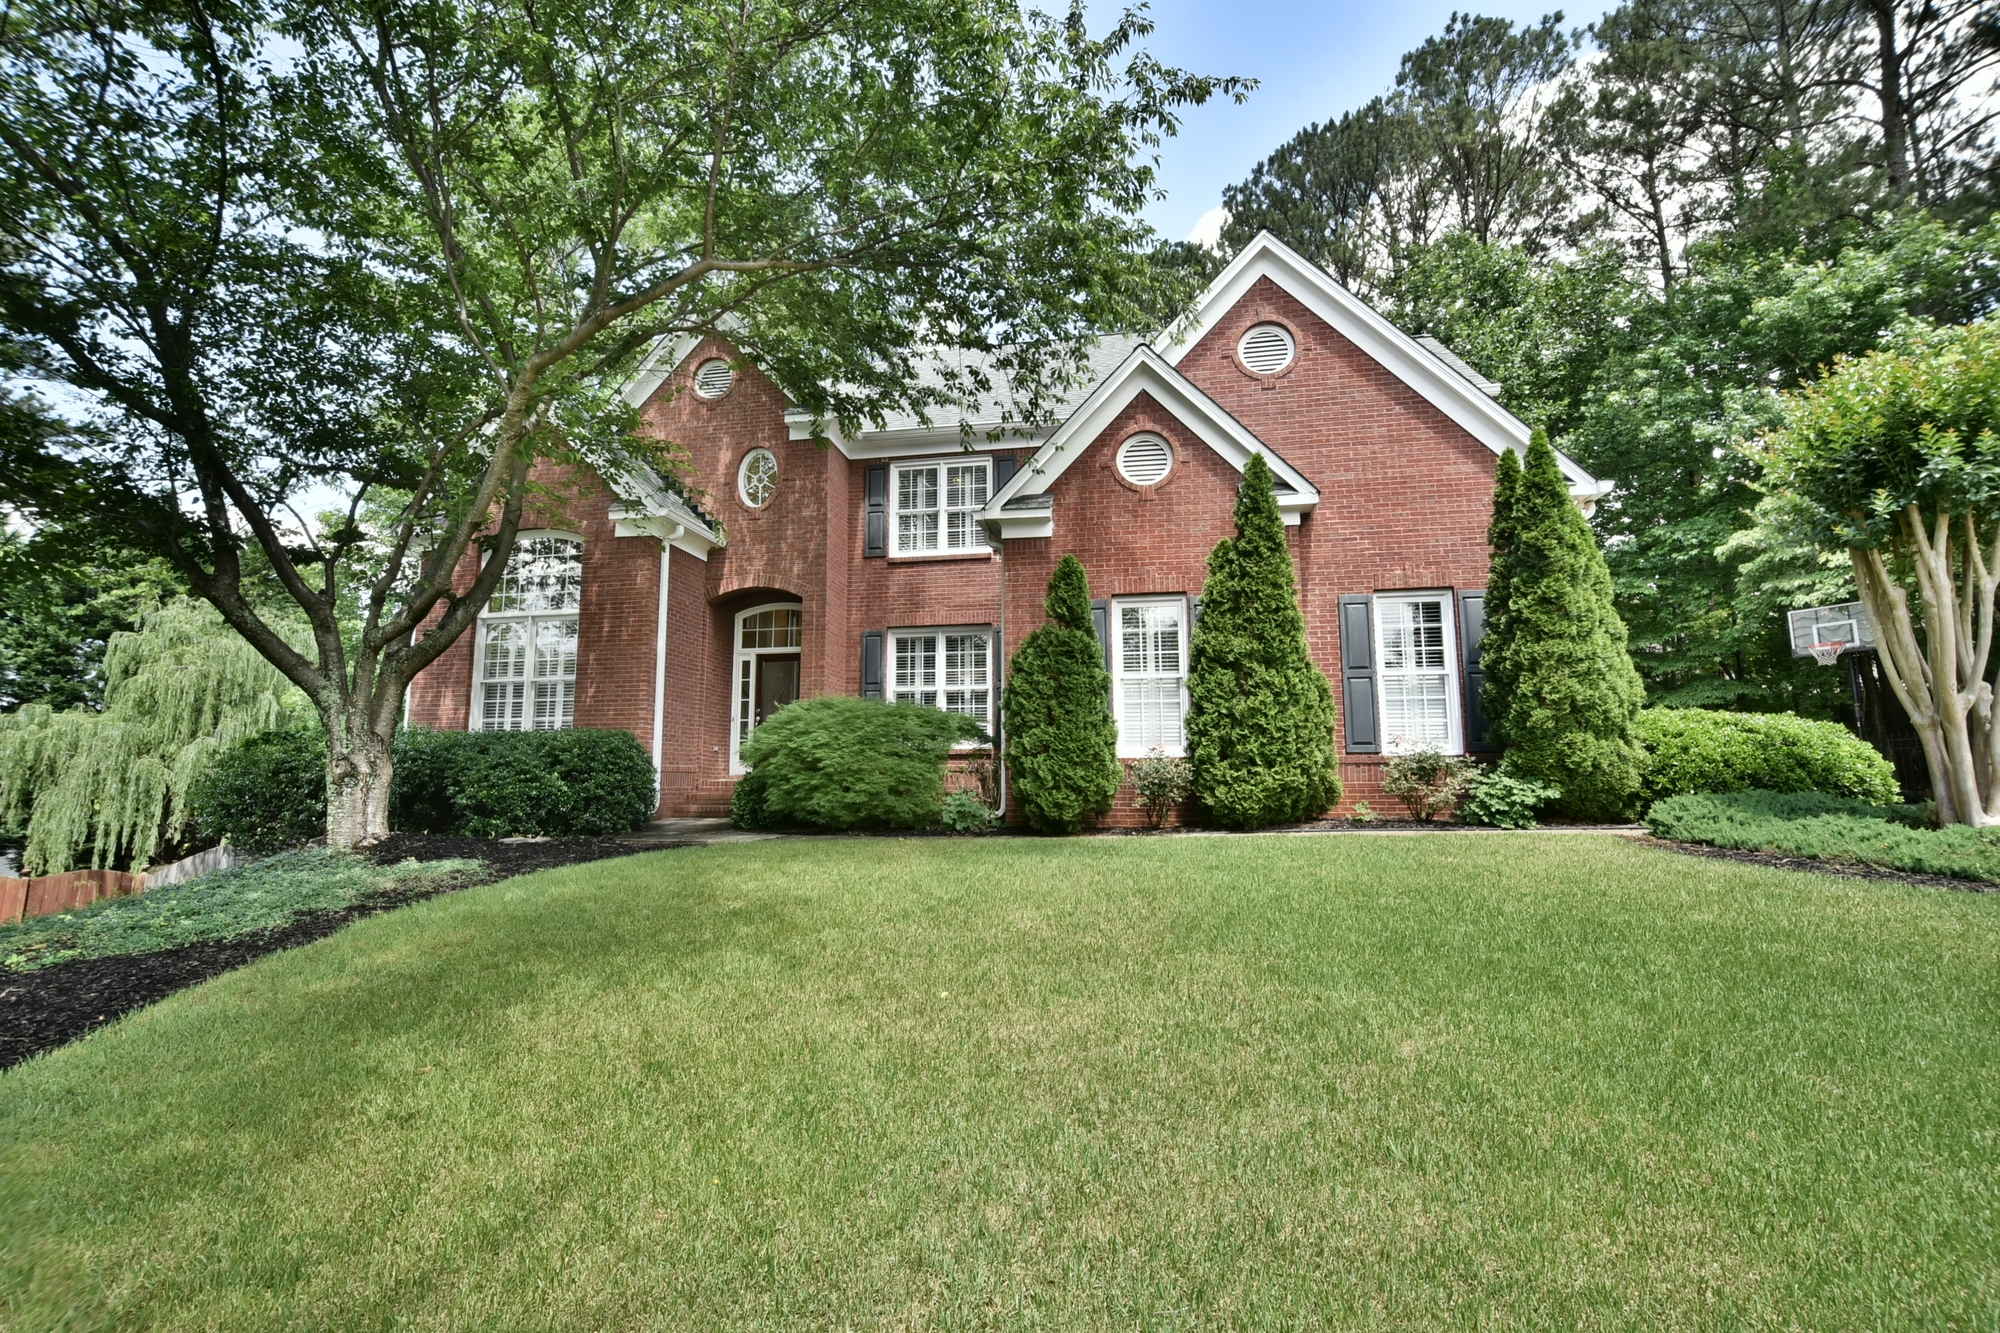 Casa Unifamiliar por un Venta en Beautiful Brick Home In Alpharetta near Avalon 455 Park Creek Drive Alpharetta, Georgia, 30005 Estados Unidos